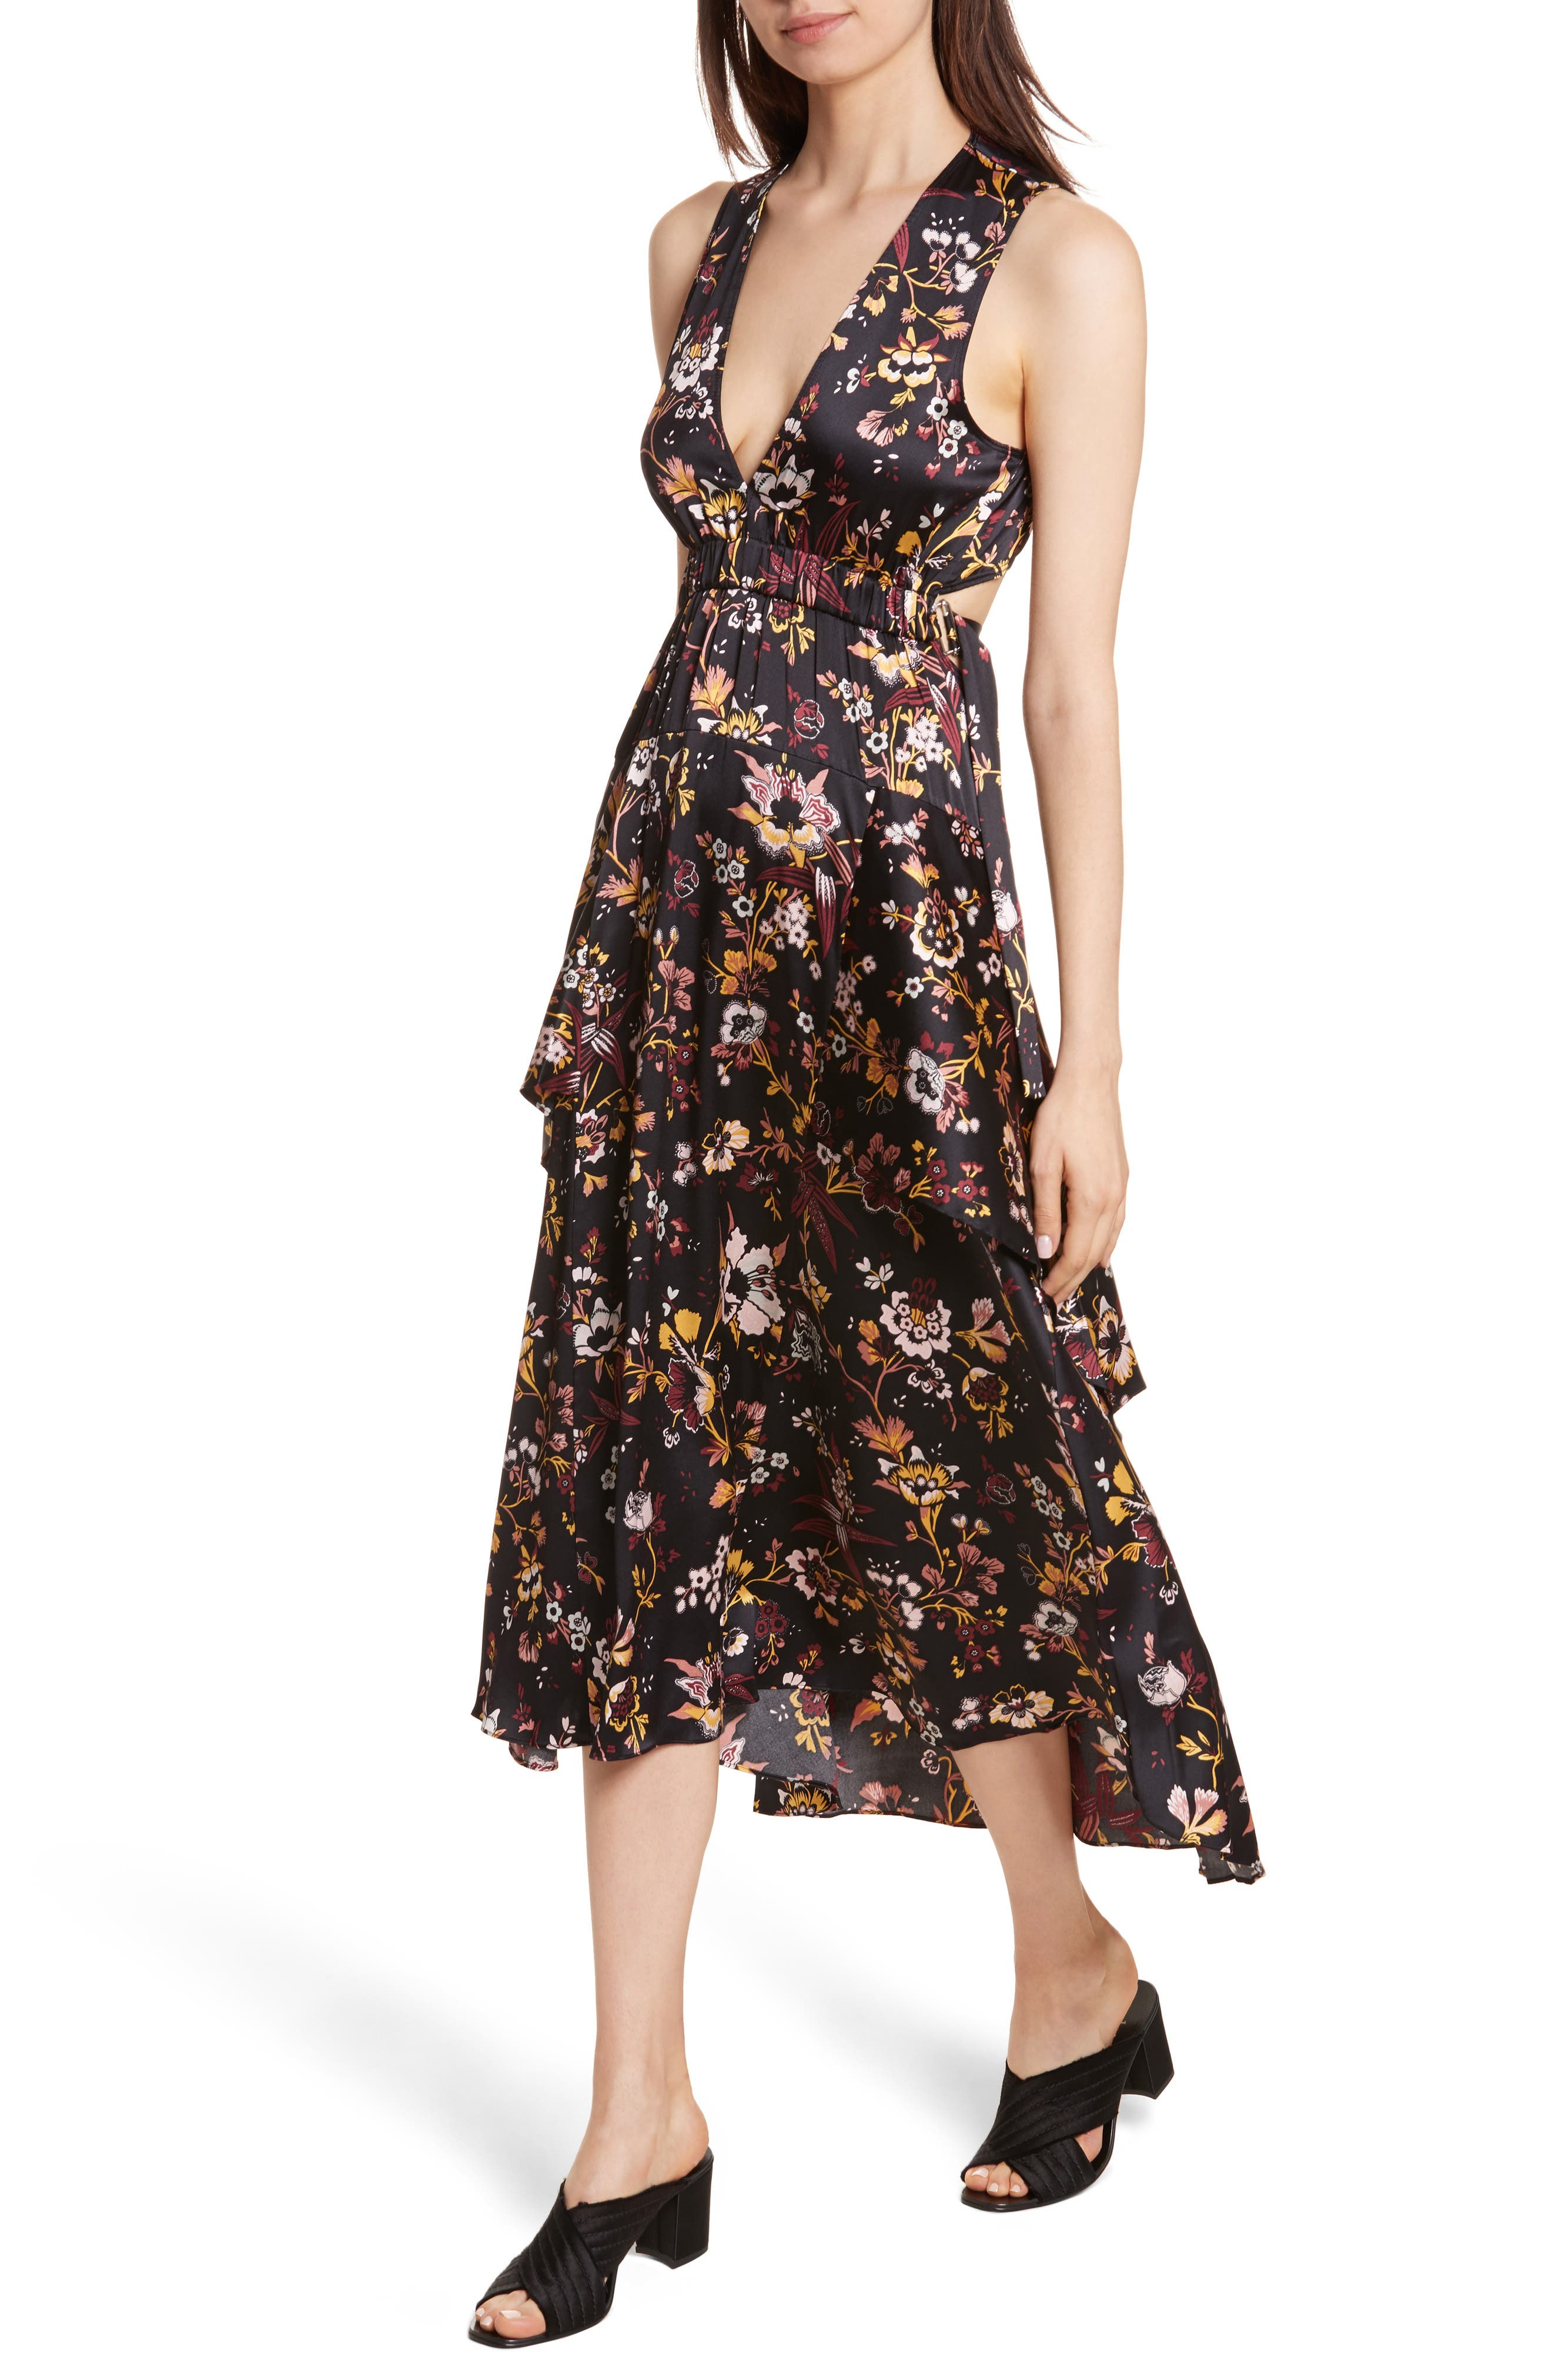 Verbena Floral Print Stretch Silk Dress,                             Alternate thumbnail 4, color,                             Black/ Grey/ Mustard